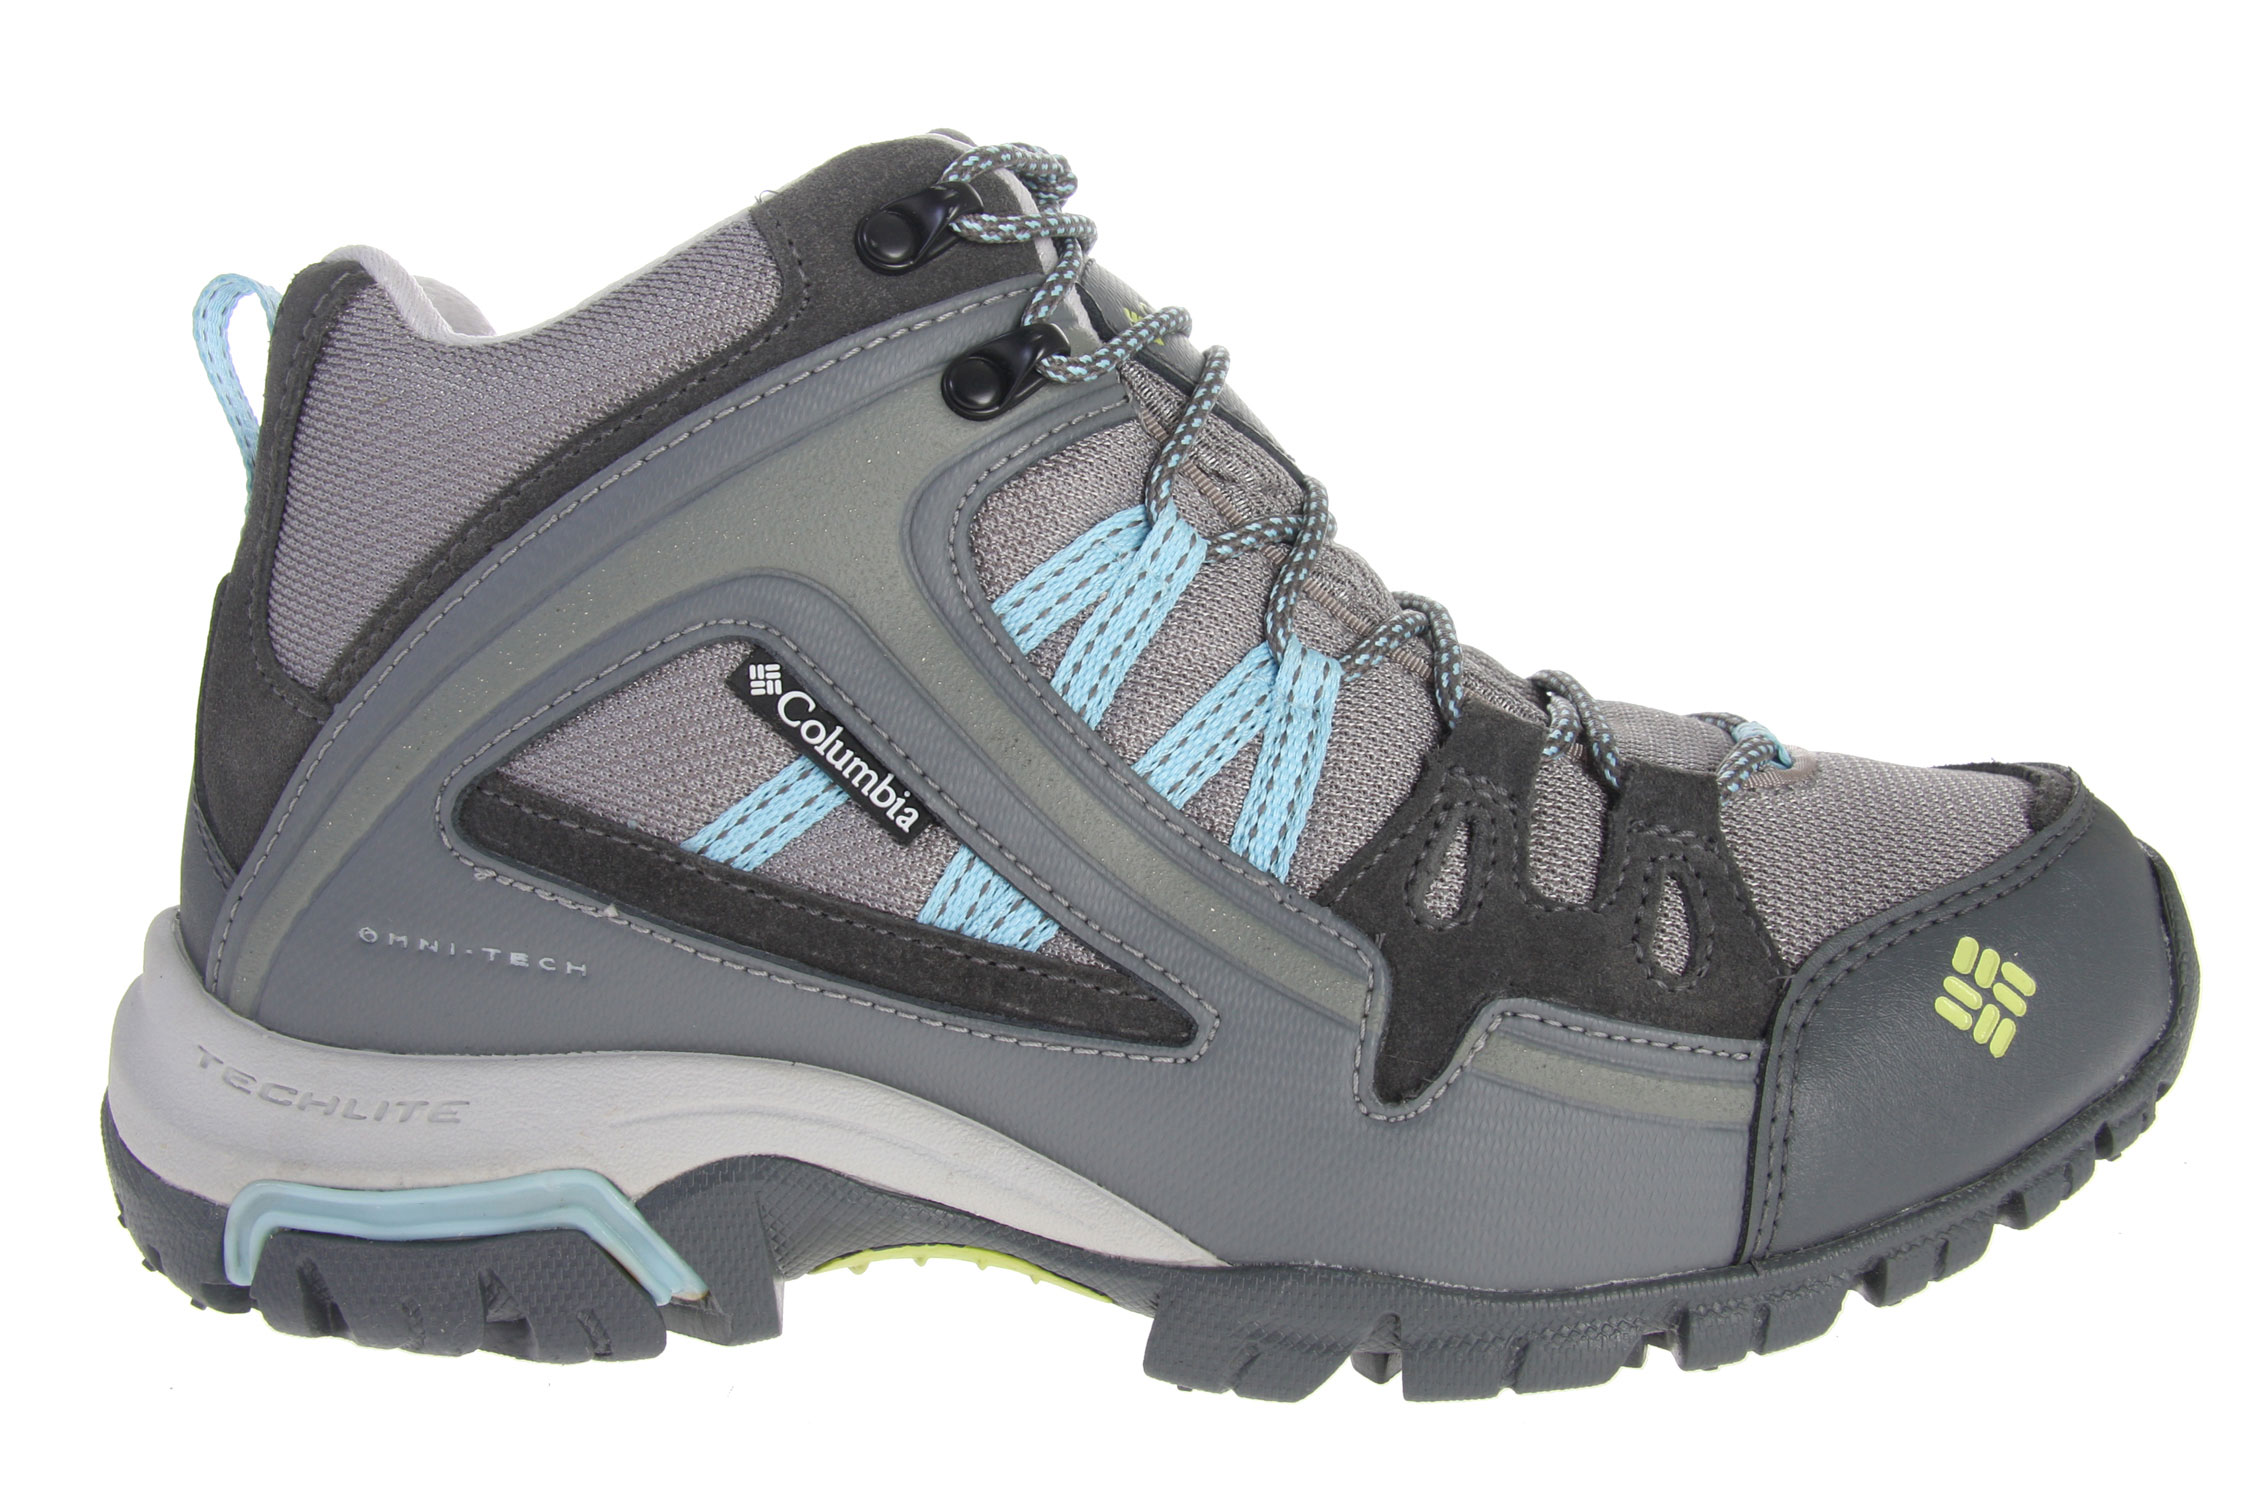 Camp and Hike Combining the essential stability of a mid-cut boot with the lightweight performance of trail shoe, the multi-purpose Shastalavista Mid is built to take you hiking, mountain biking, scrambling, and trail running in all-weather comfort. Designed for outdoor multi-functionality, it features a cool, mid-cut Omni-Tech waterproof-breathable mesh upper with leather overlays to keep feet protected from the elements and ankles supported on the trail. Reinforced rubber toe and heel protection enhances durability on rocky terrain, while the soft mesh collar prevents heel chafe. Inside the shoe, a removable Contour Comfort 1D footbed pulls moisture away from skin to while delivering lightweight cushioning and support. Compression-molded Techlite midsole maximizes comfort and minimizes weight, while a Omni-Grip rubber outsole with Kinetic Response provides independent suspension when the going gets rough. Key Features of the Columbia Shastalavista Omni Mid Hiking Shoes: Omni-Tech waterproof-breathable mesh upper with Nubuck leather and PU-coated overlays Durable mesh collar Removable Contour Comfort 1D footbed with wicking treatment Injection-molded tuned TPU shank Compression-molded Techlite for lightweight cushioning and comfort Non-marking Omni-Grip rubber compound outsole with Kinetic Response Weight: Size 7, 1/2 pair=14.5oz/411g - $89.95